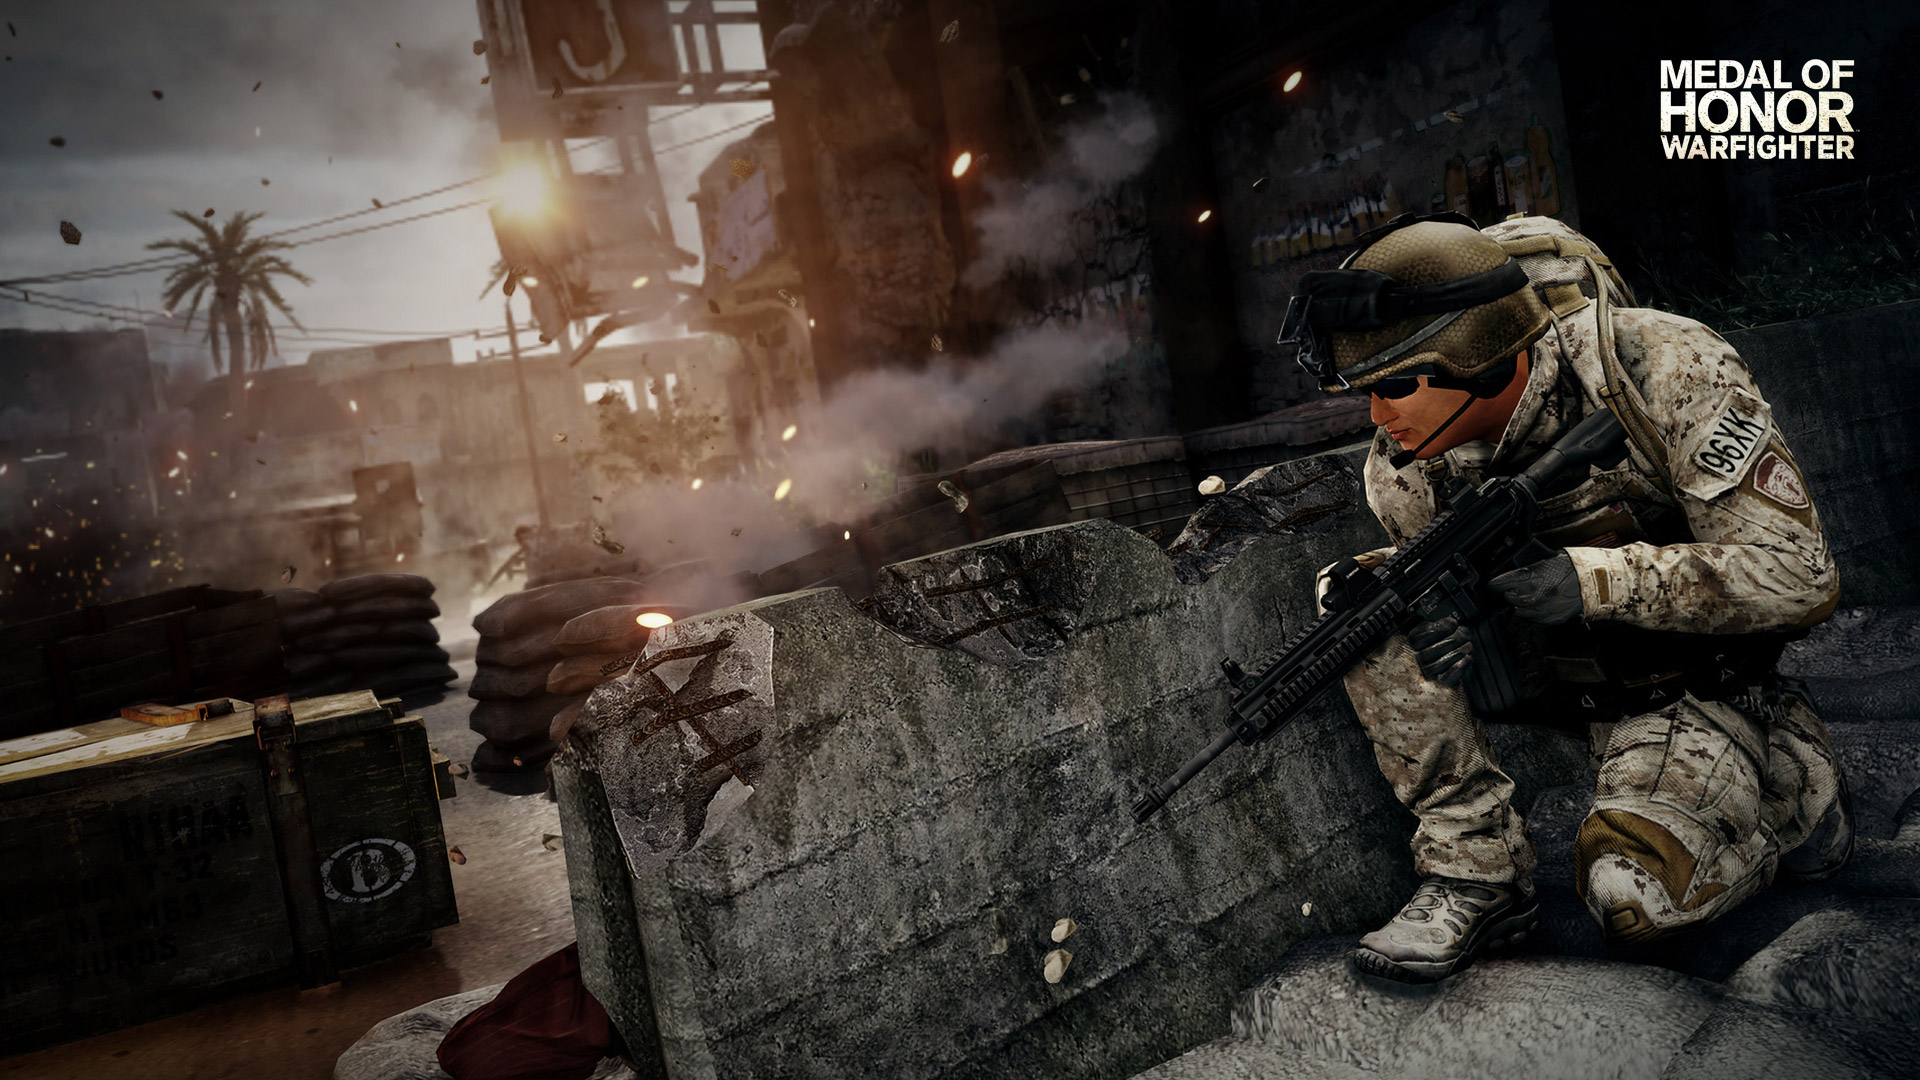 Medal of Honor: Warfighter Wallpaper in 1920x1080